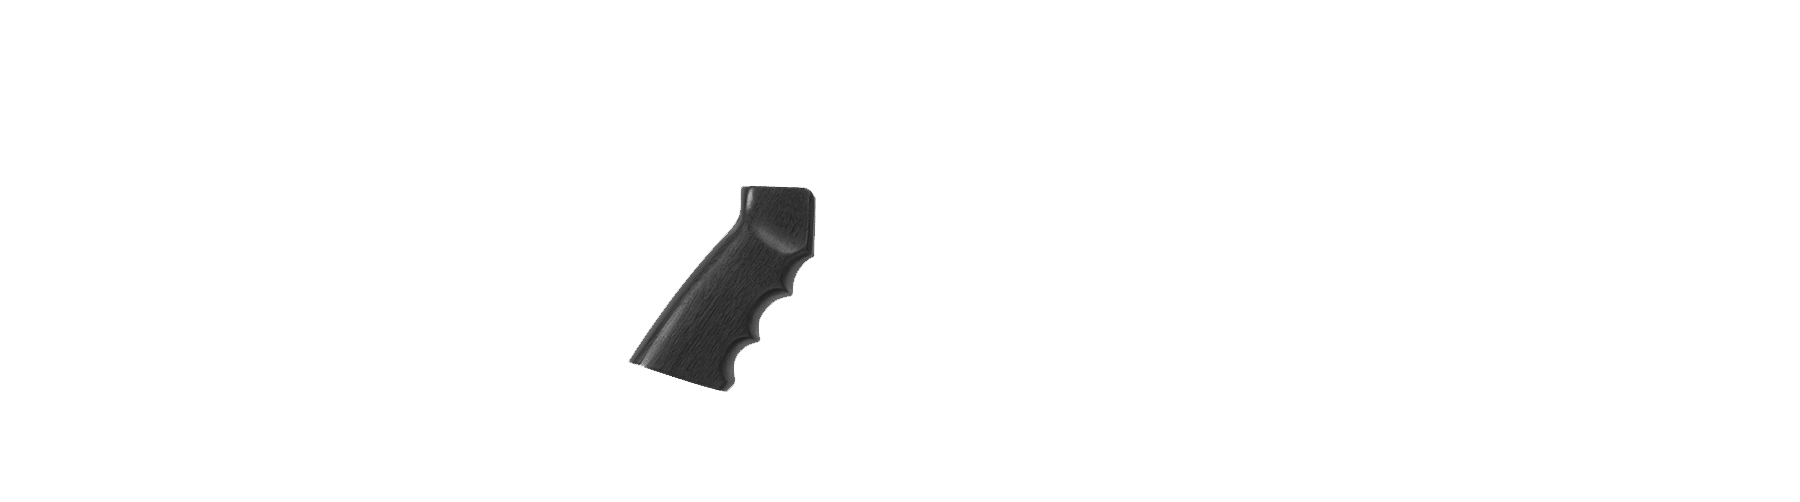 Ares Arms Ar-15 Finger Groove Grip